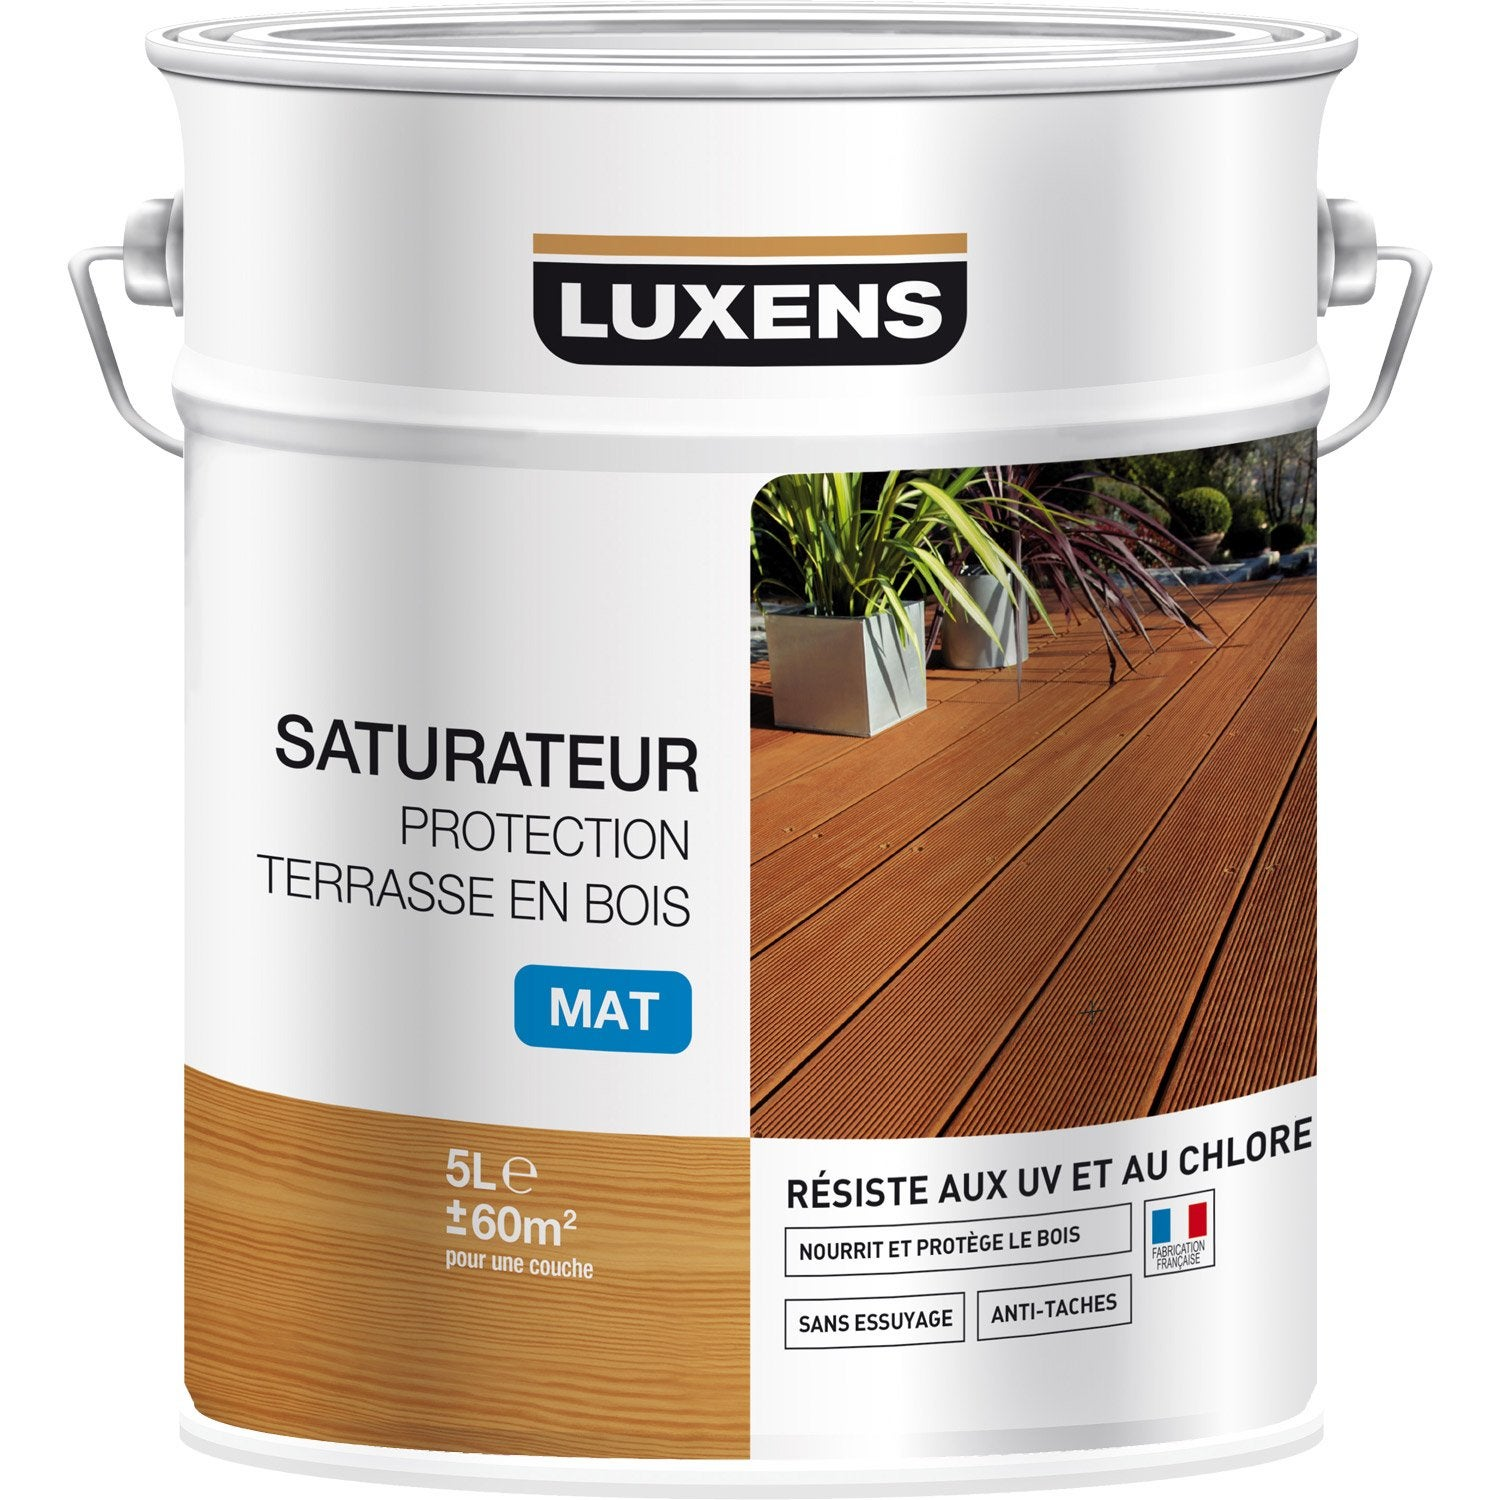 Saturateur luxens saturateur protection terrasse en bois 5 - Saturateur bois terrasse ...